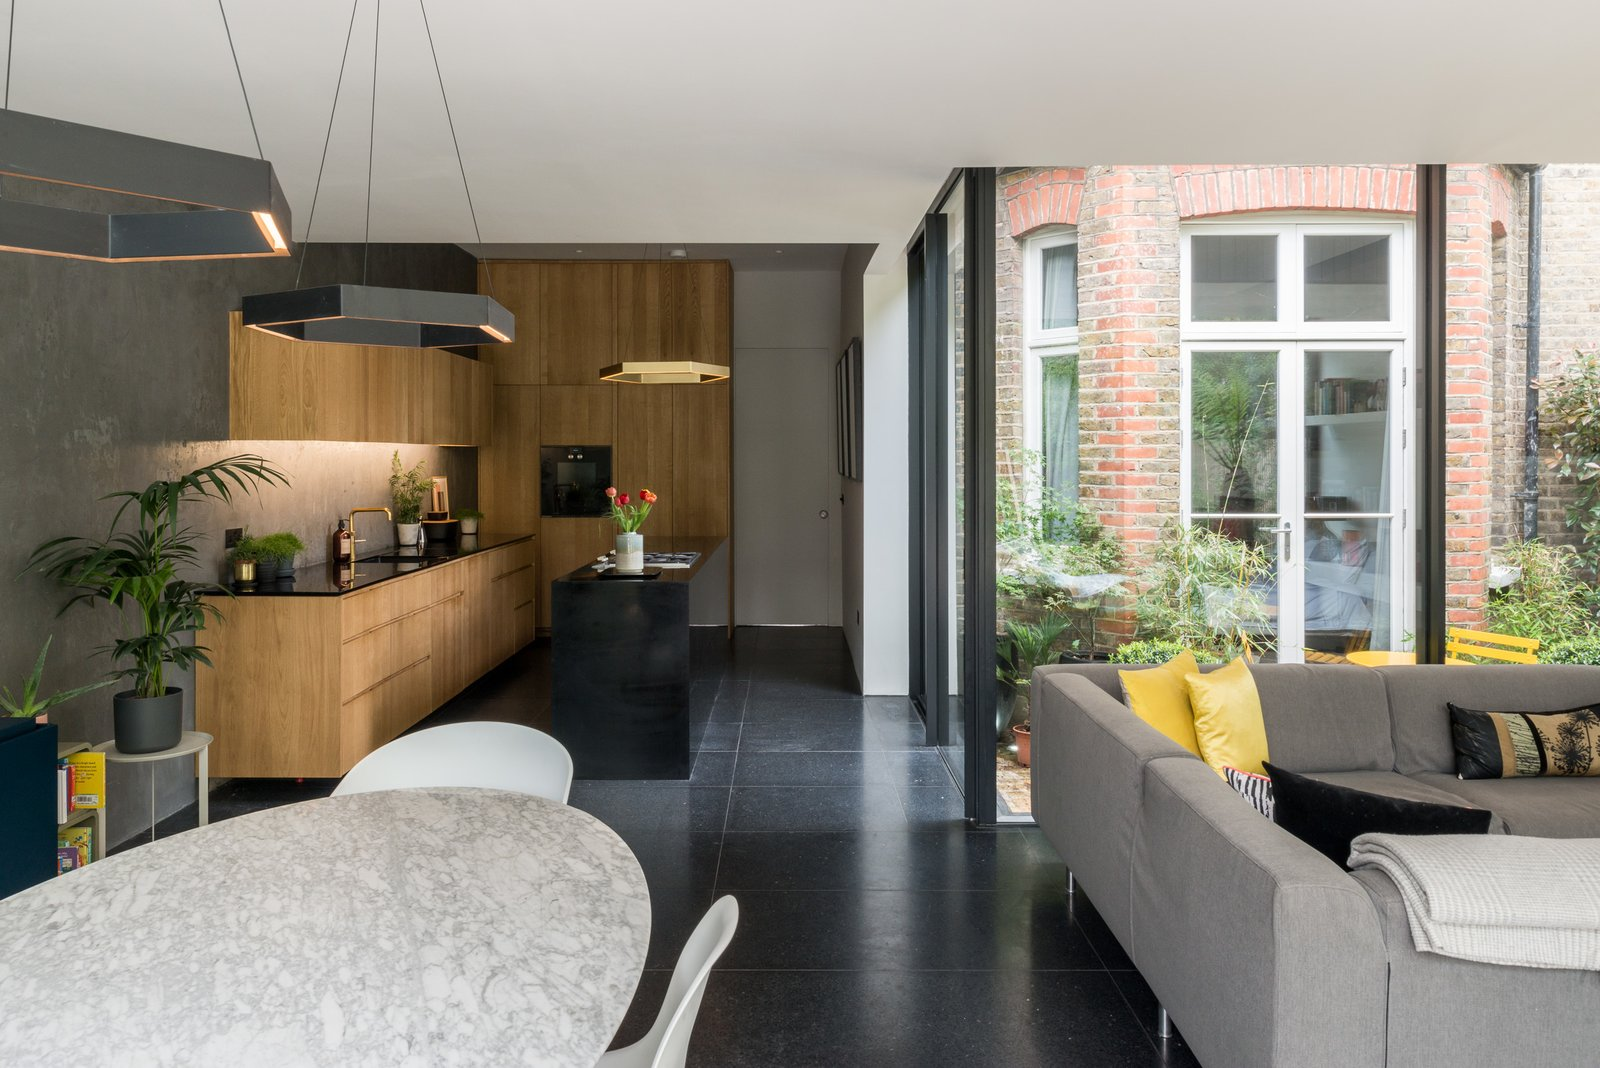 Living Room, Terrazzo Floor, Sectional, Pendant Lighting, Chair, and Table An overview of the open-plan interior space.  Photo 4 of 11 in A Swoon-Worthy London Apartment Is Listed For £1.8M